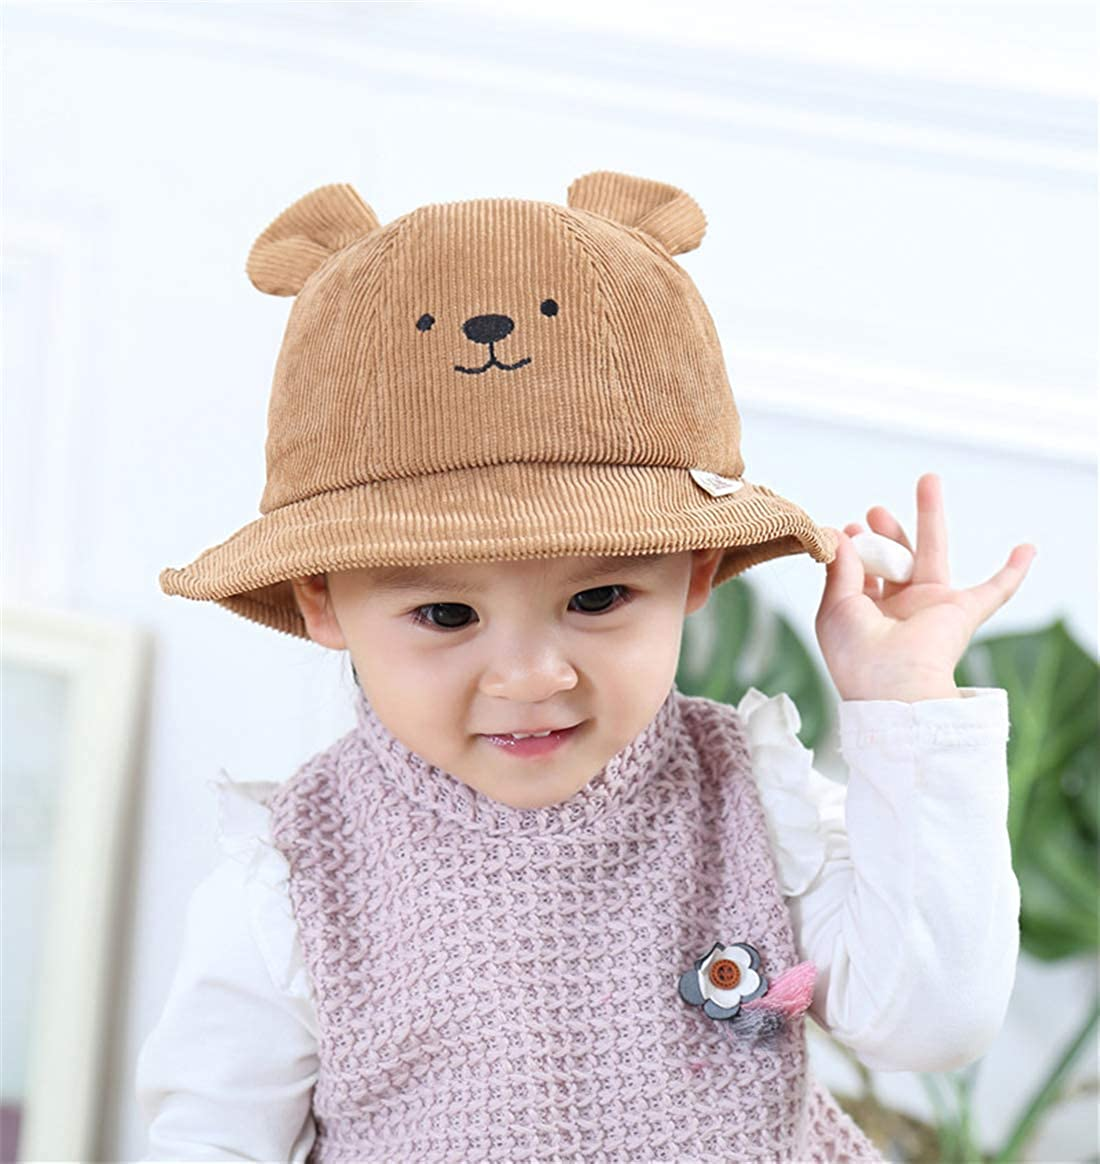 Usunny Kids Bucket Hat Toddler Girls Sun Hat Breathable Summer PlayHat